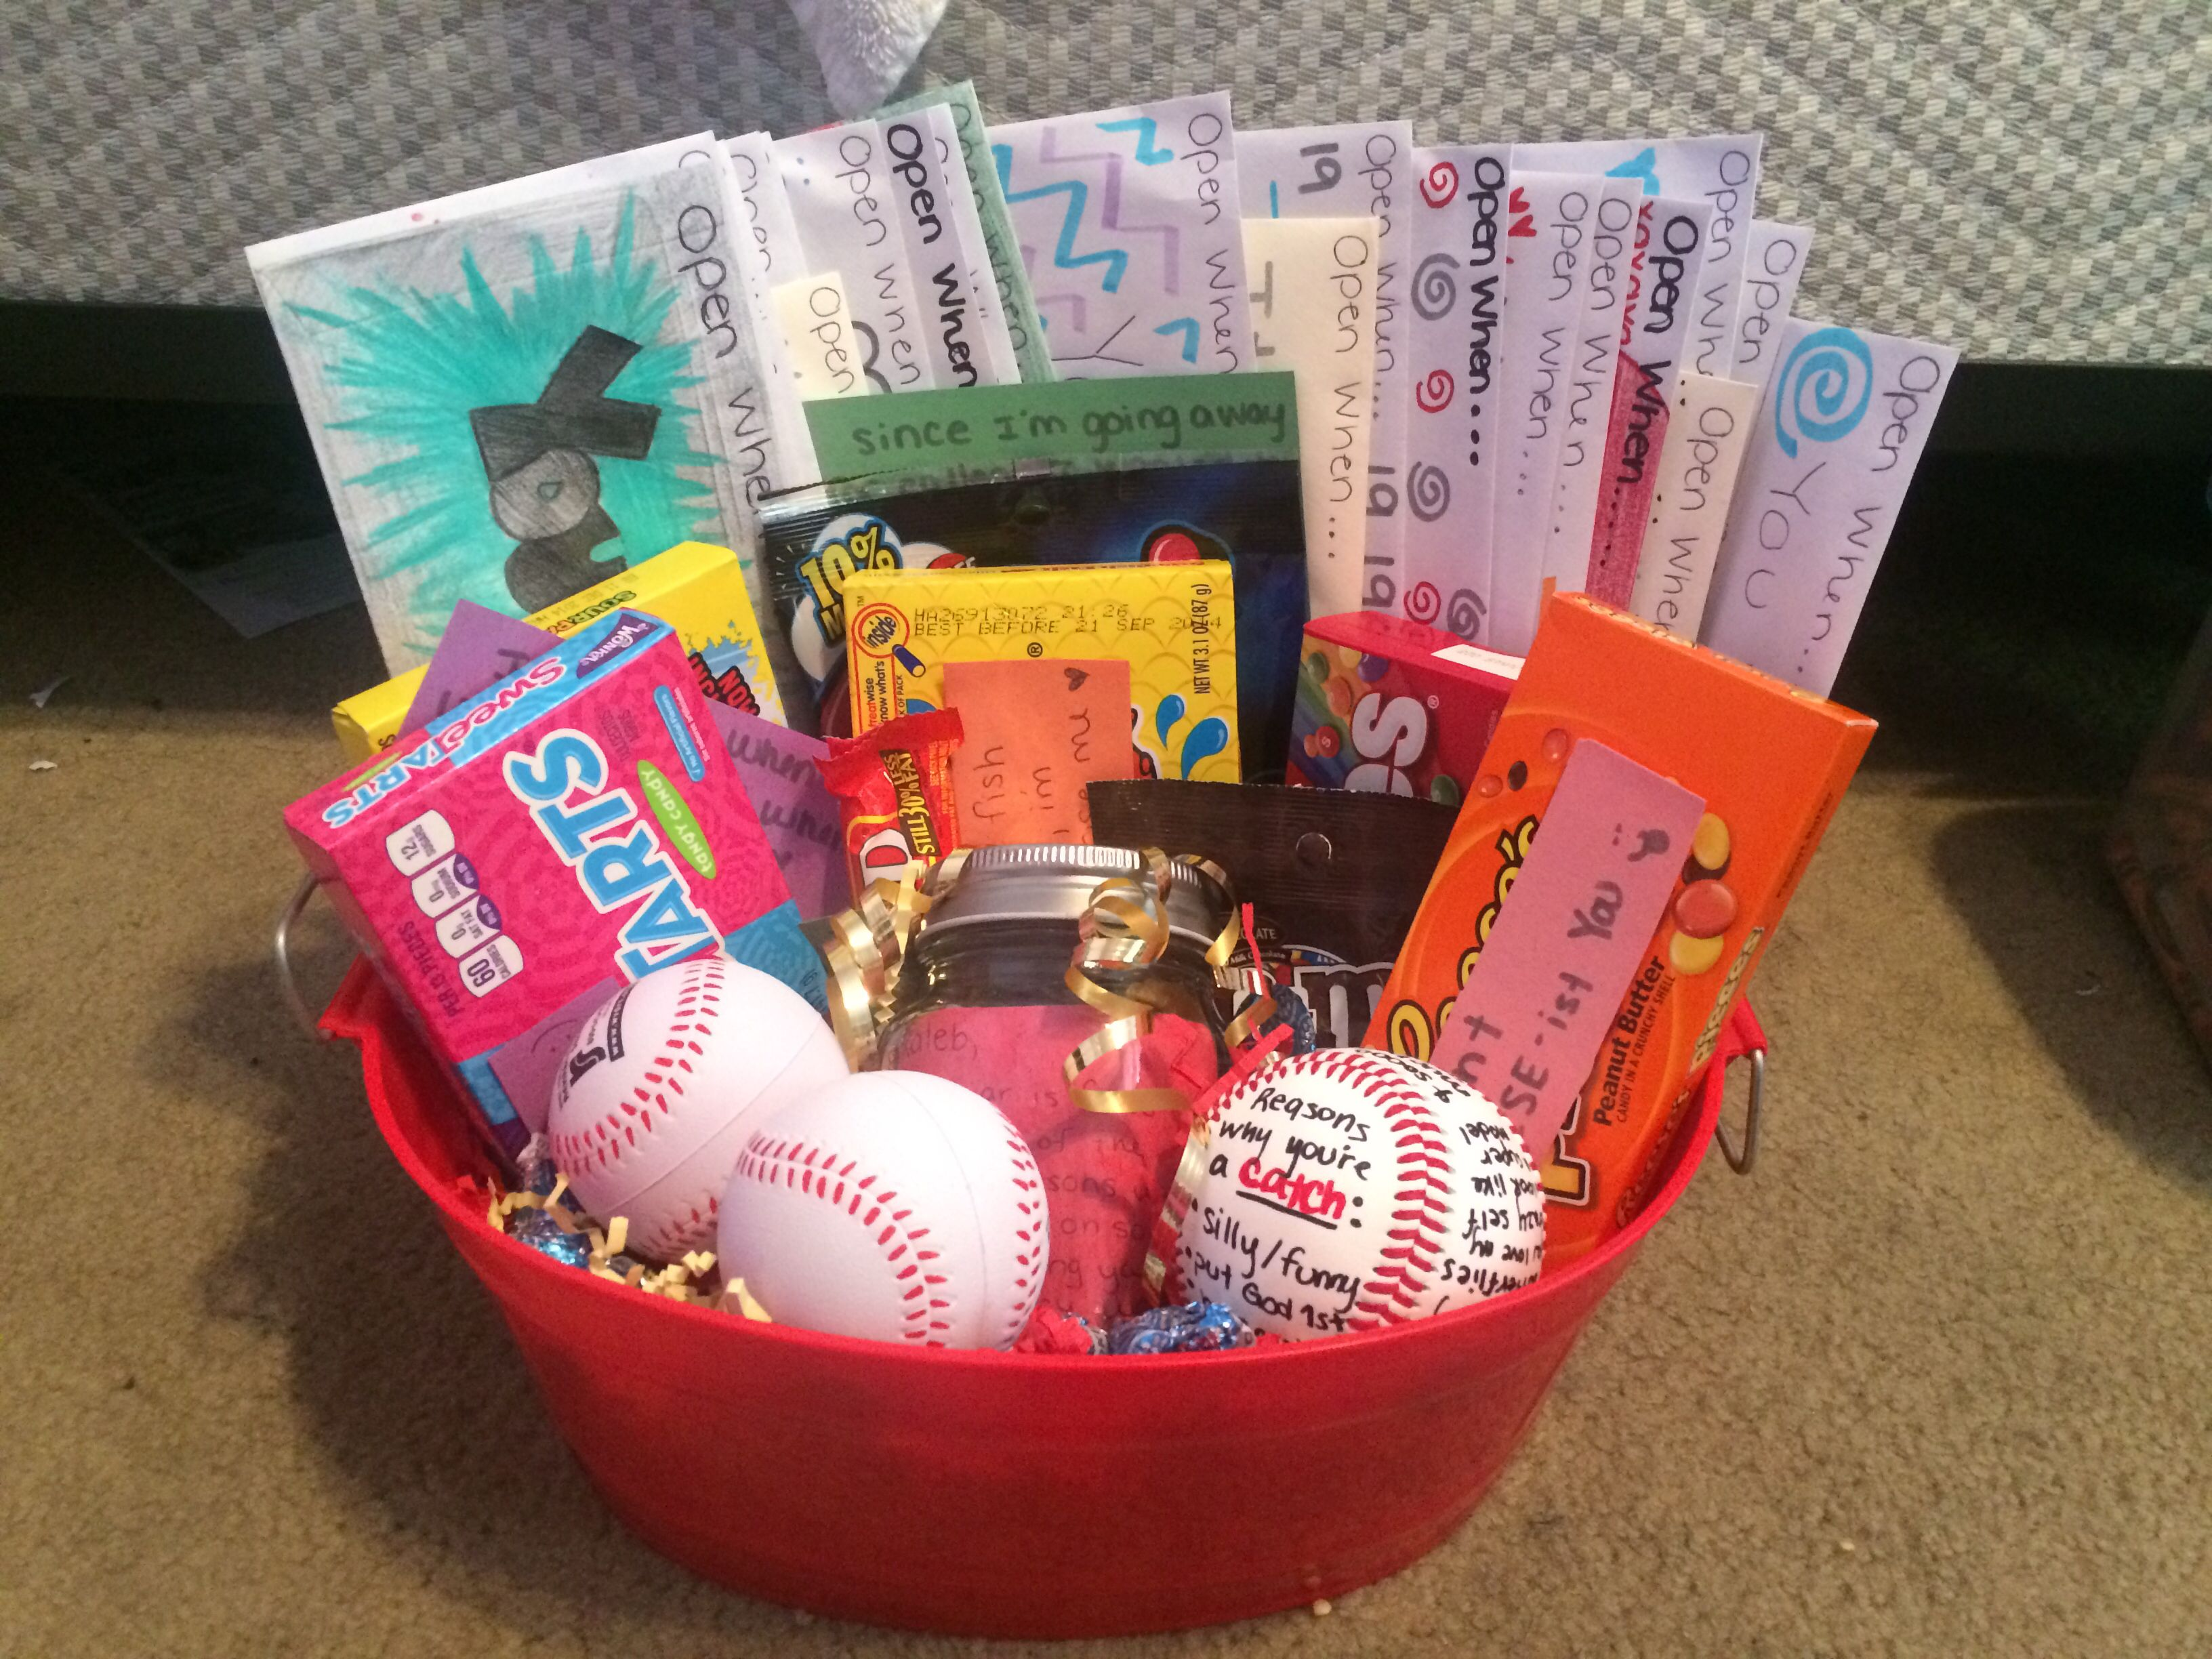 Baseball boyfriend gift to give before going off to different baseball boyfriend gift to give before going off to different colleges reasons why i love you jar reasons why your a catch ball candy with cute messages negle Image collections